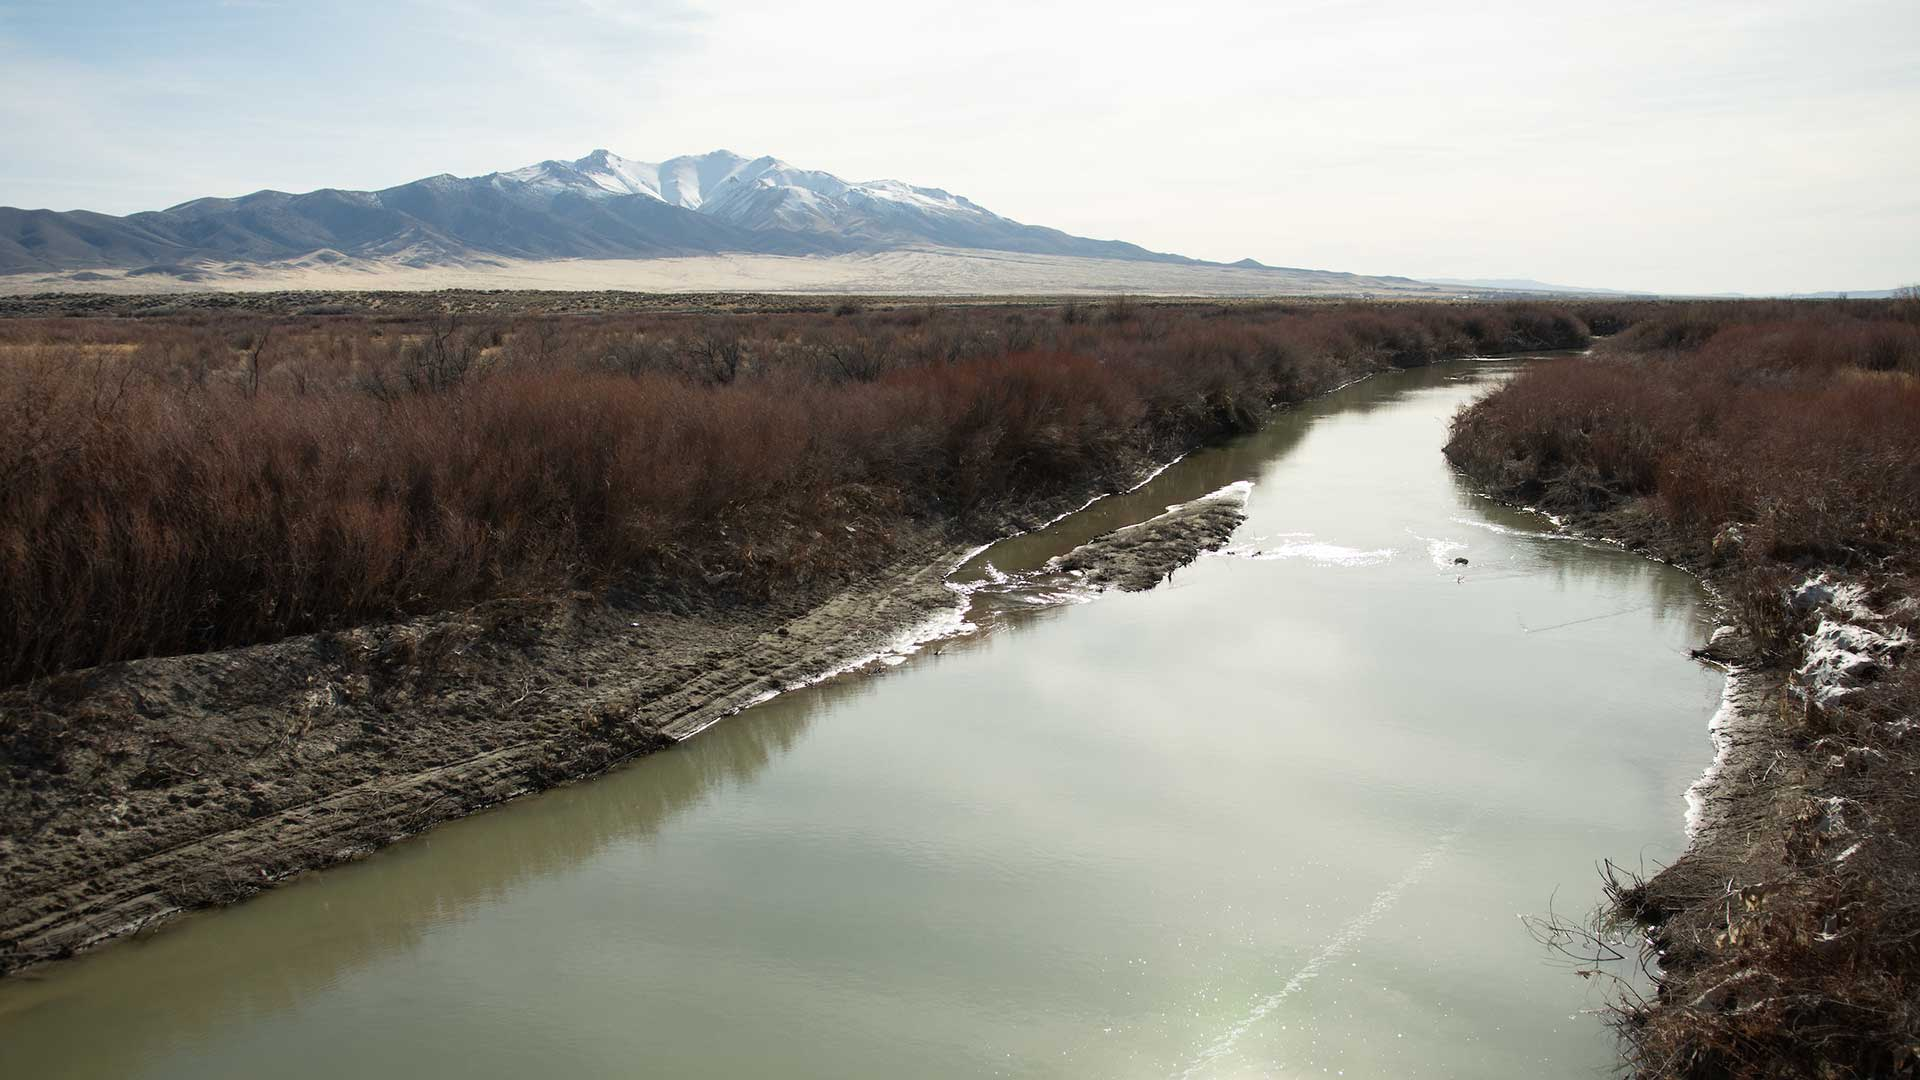 The Humboldt River between Lovelock and Winnemucca on February 25, 2020. The river provides water to towns along the I-80 corridor, mines, businesses and agricultural operations in northern Nevada.